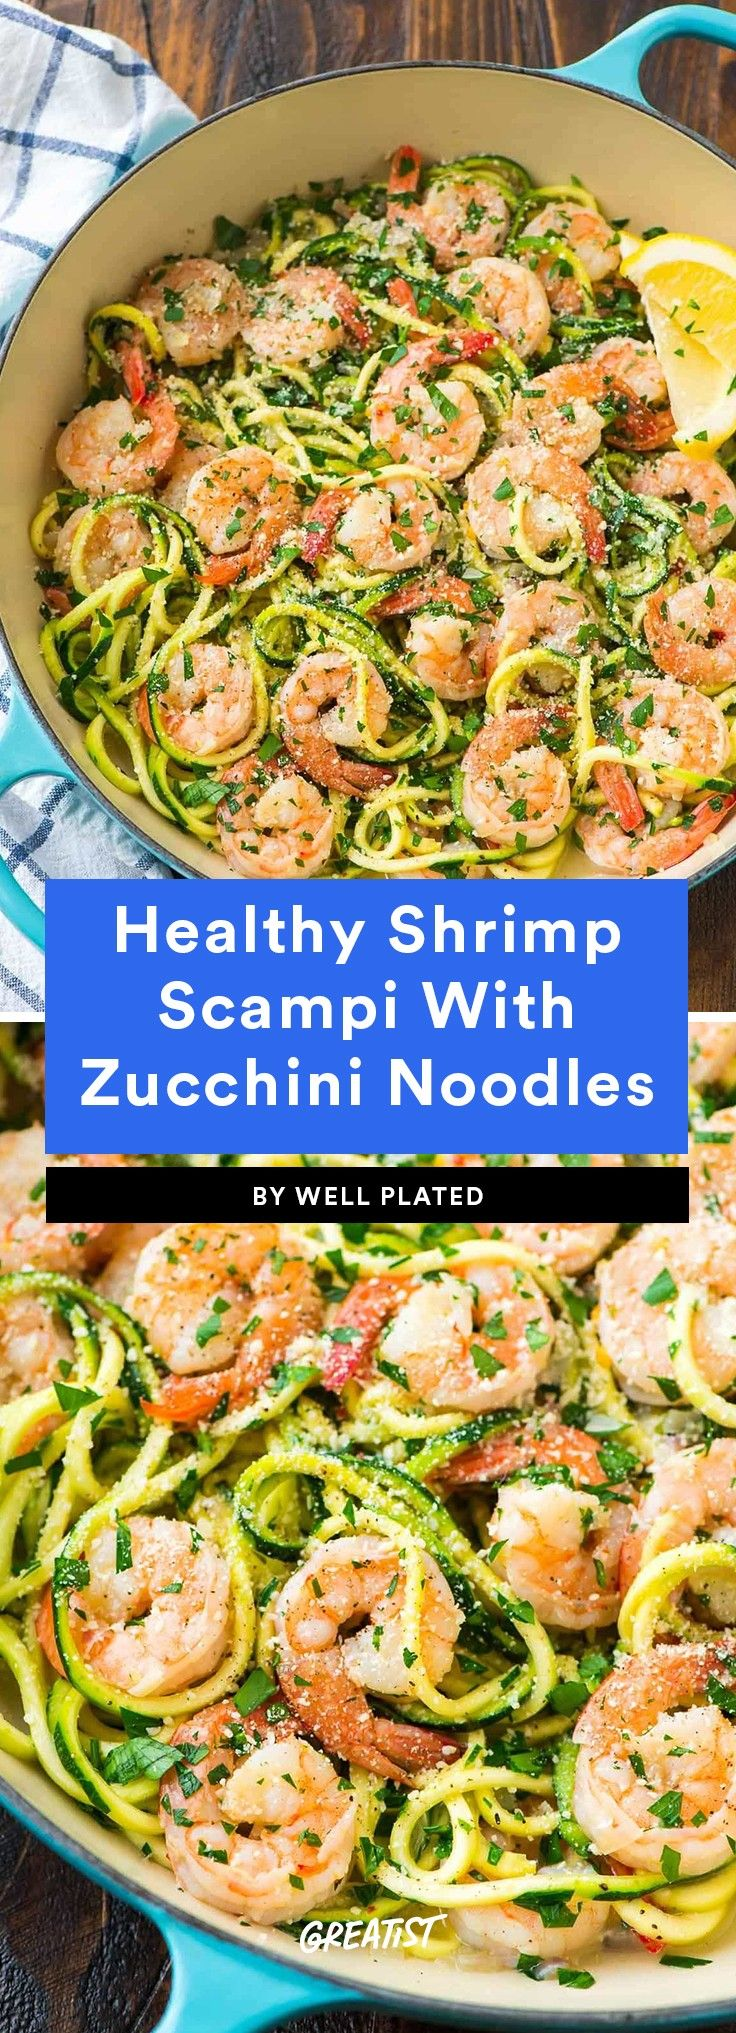 9 Low-Carb Shrimp Recipes (Maybe Give Fish a Break?)